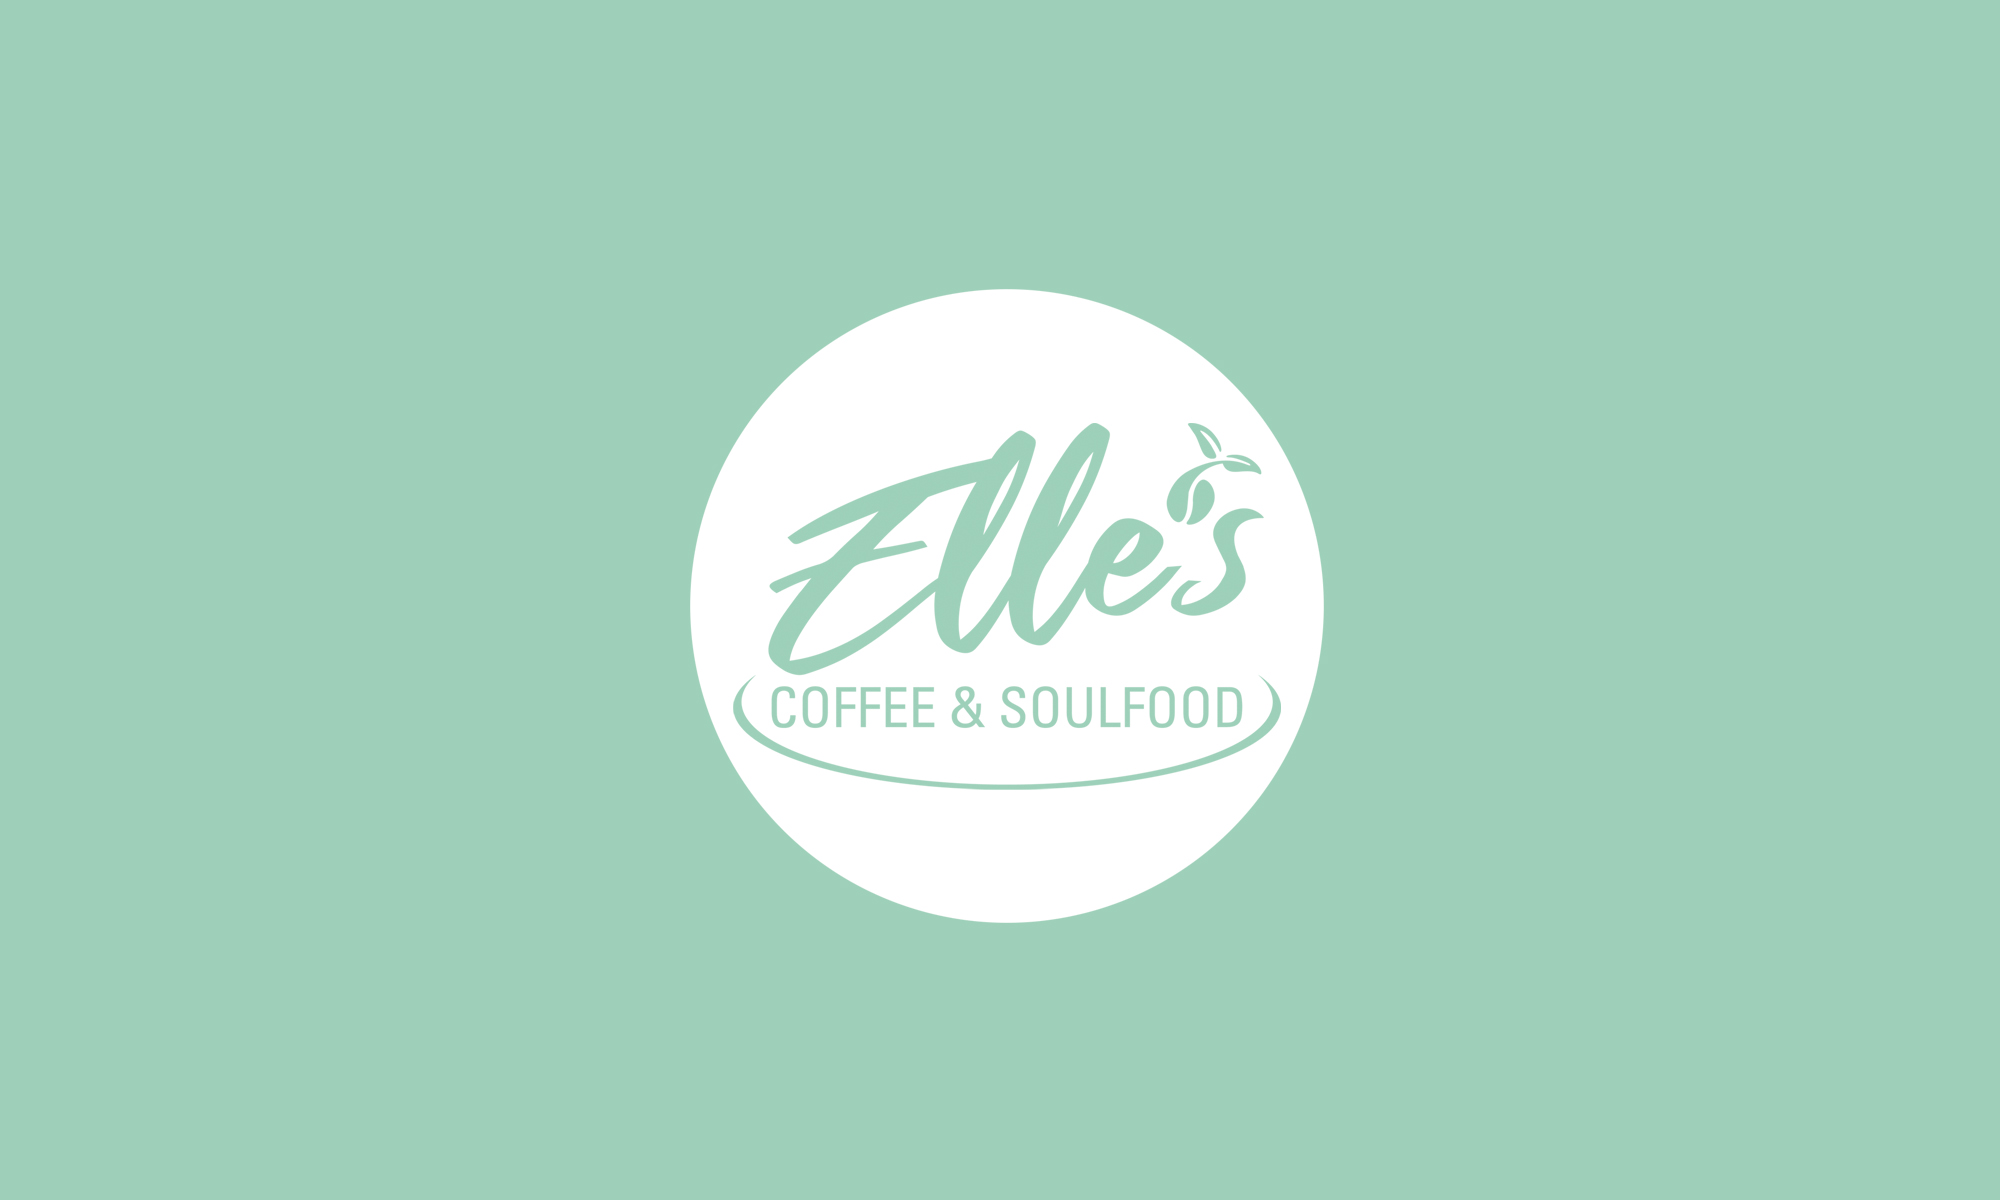 Elles Coffee and Soulfood